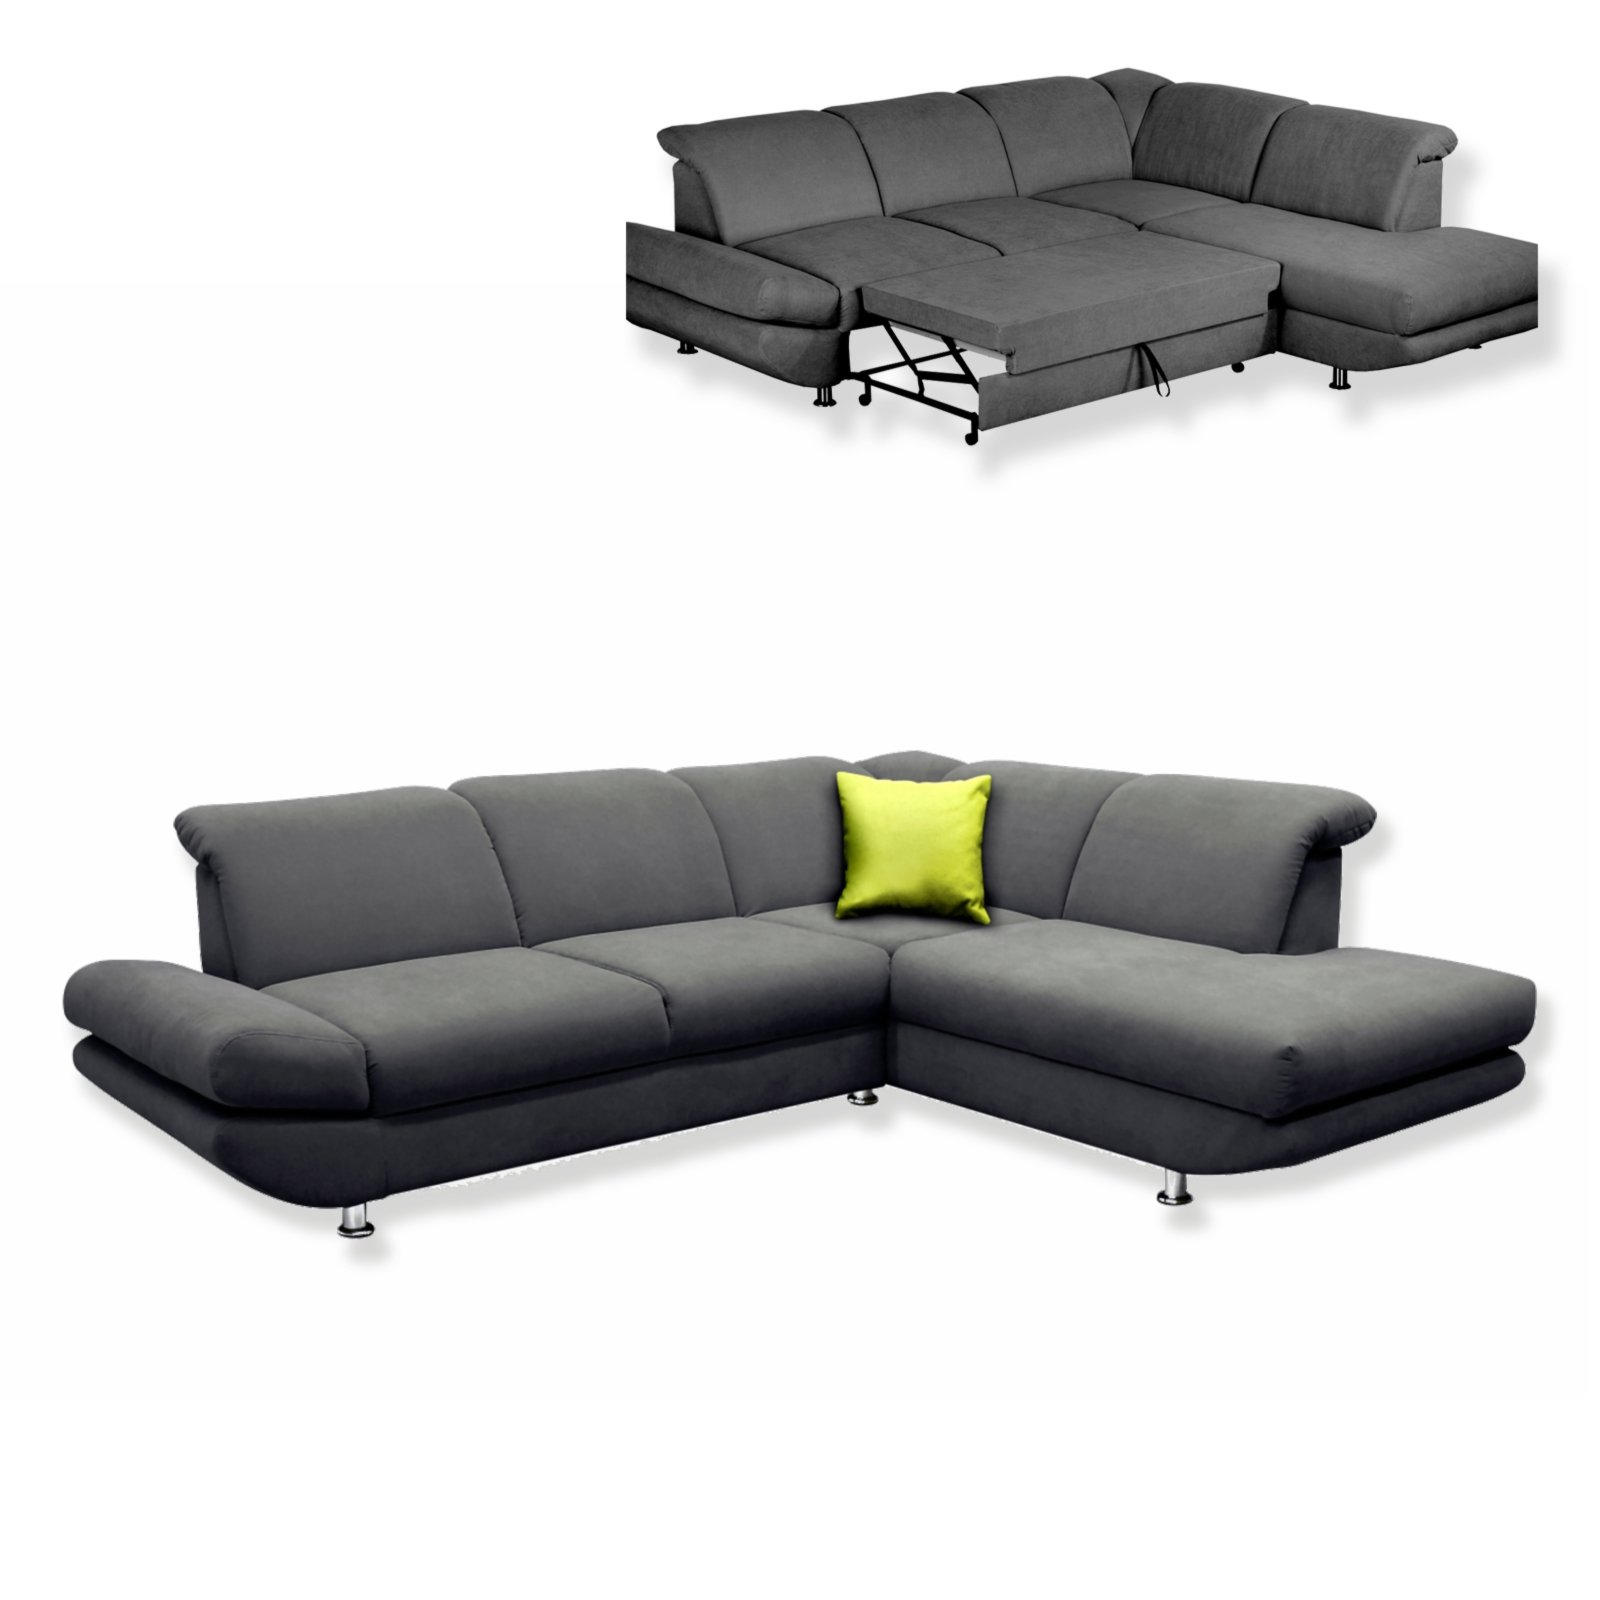 Polsterecke grau mit liegefunktion ottomane links for Sofa l form grau